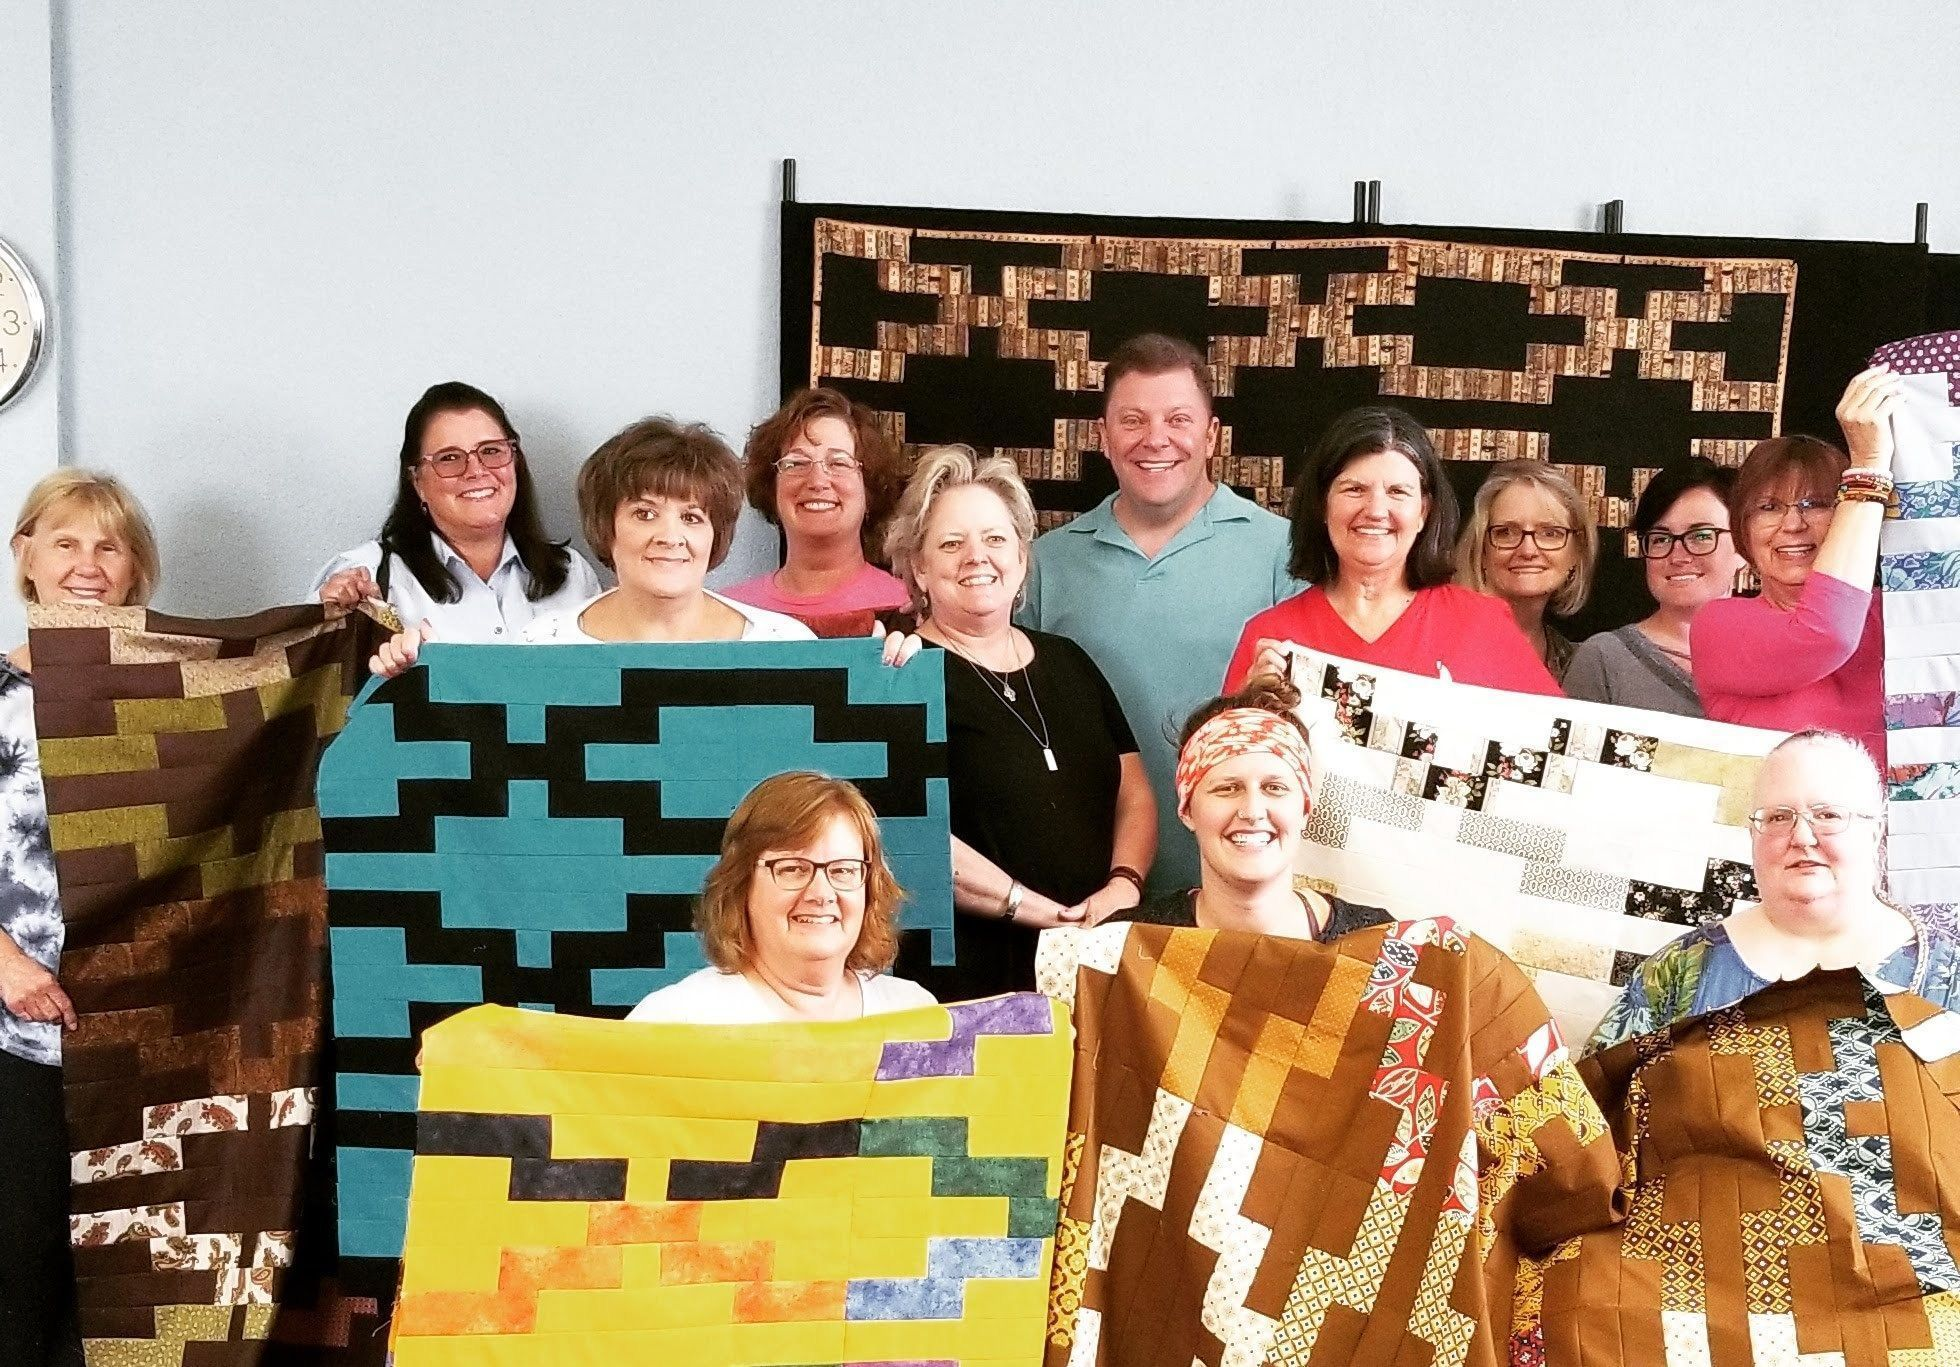 Join a Kindred Group of Quilters